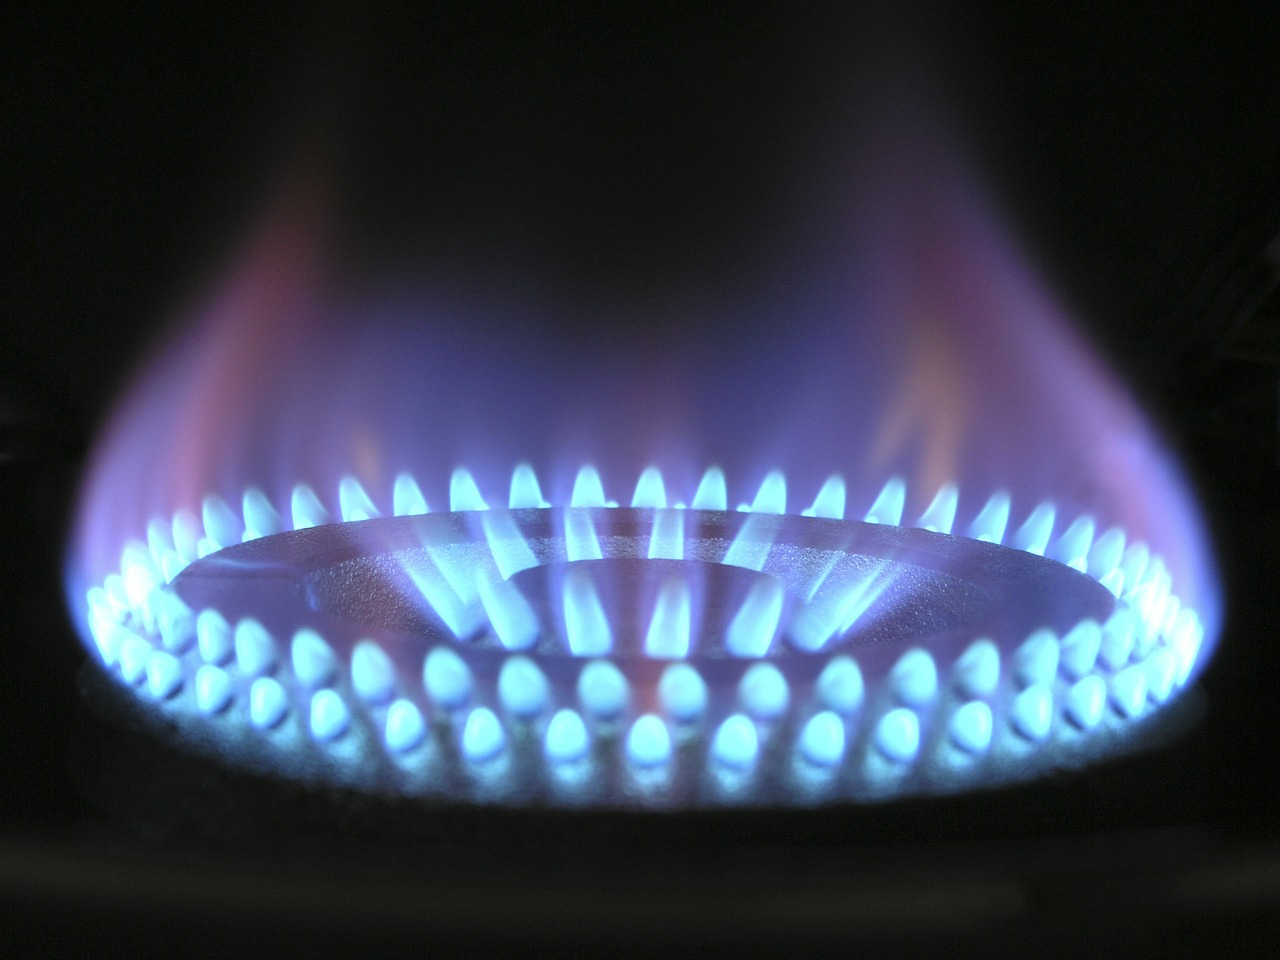 Are We Still Cooking With Gas in WA? Image credit: pixabay.com